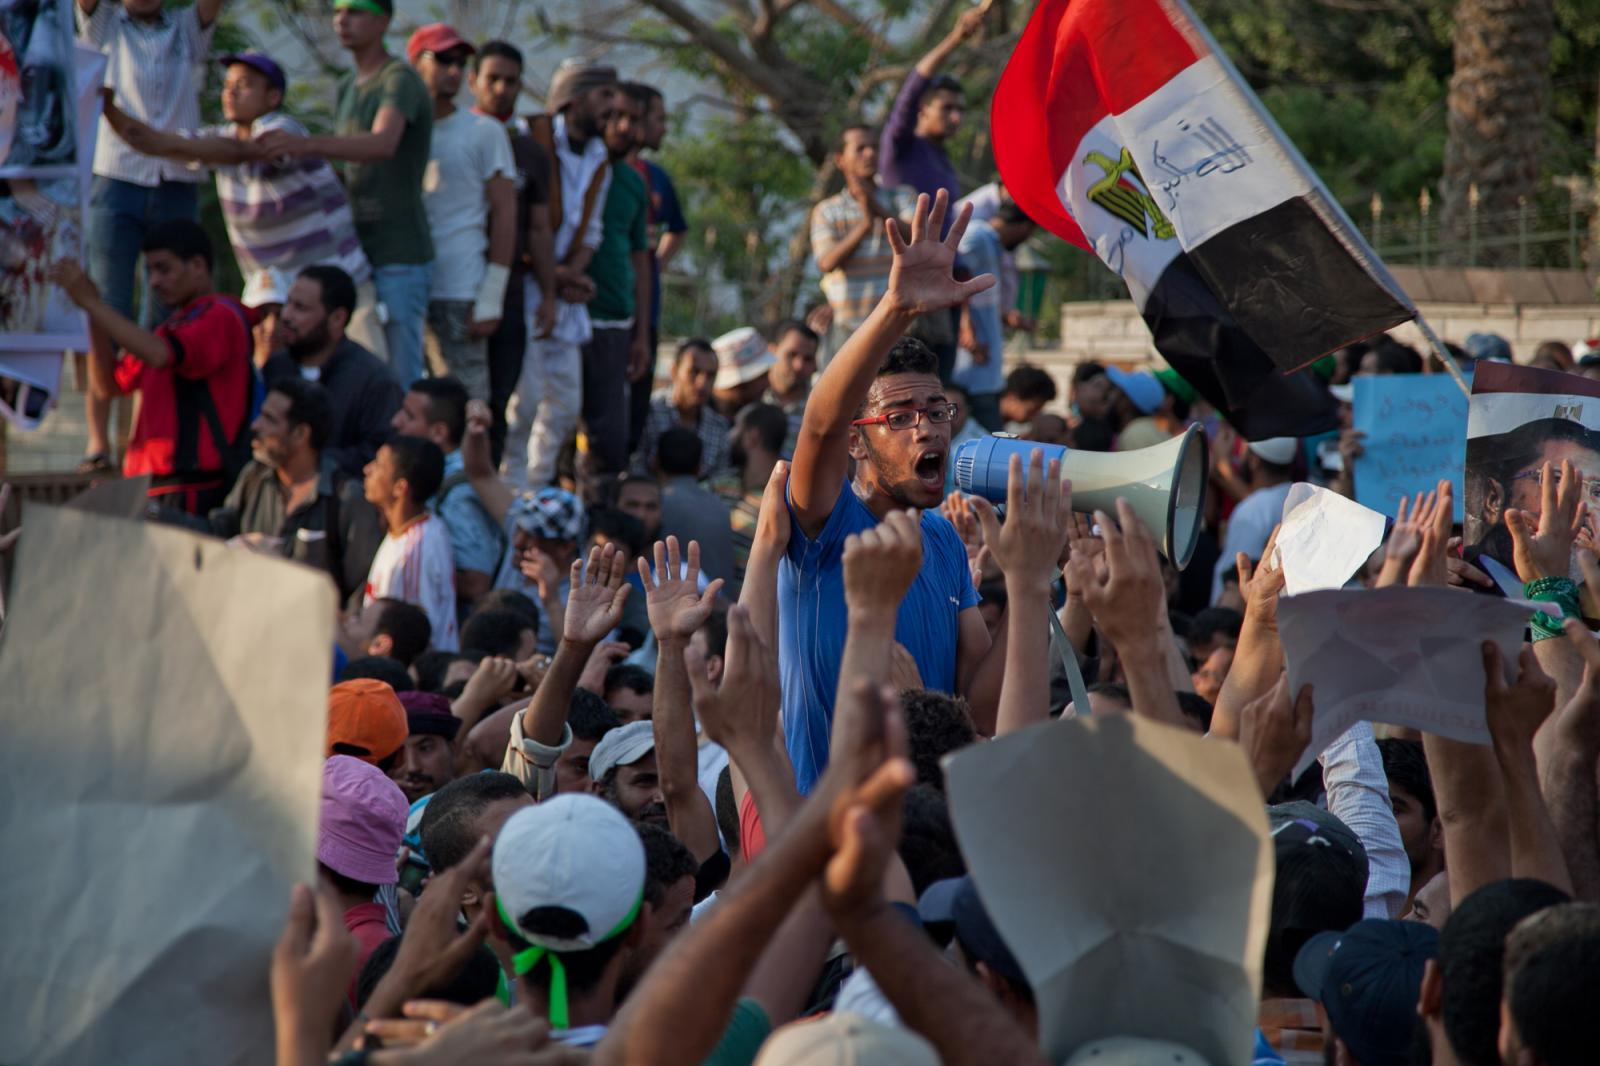 A day after a massacre on July 9, 2013 that killed 51 people and left hundreds injured. Pro-Morsi supporters continue to gather at the Republican Guard in Cairo, Egypt. Hundreds march towards the military.